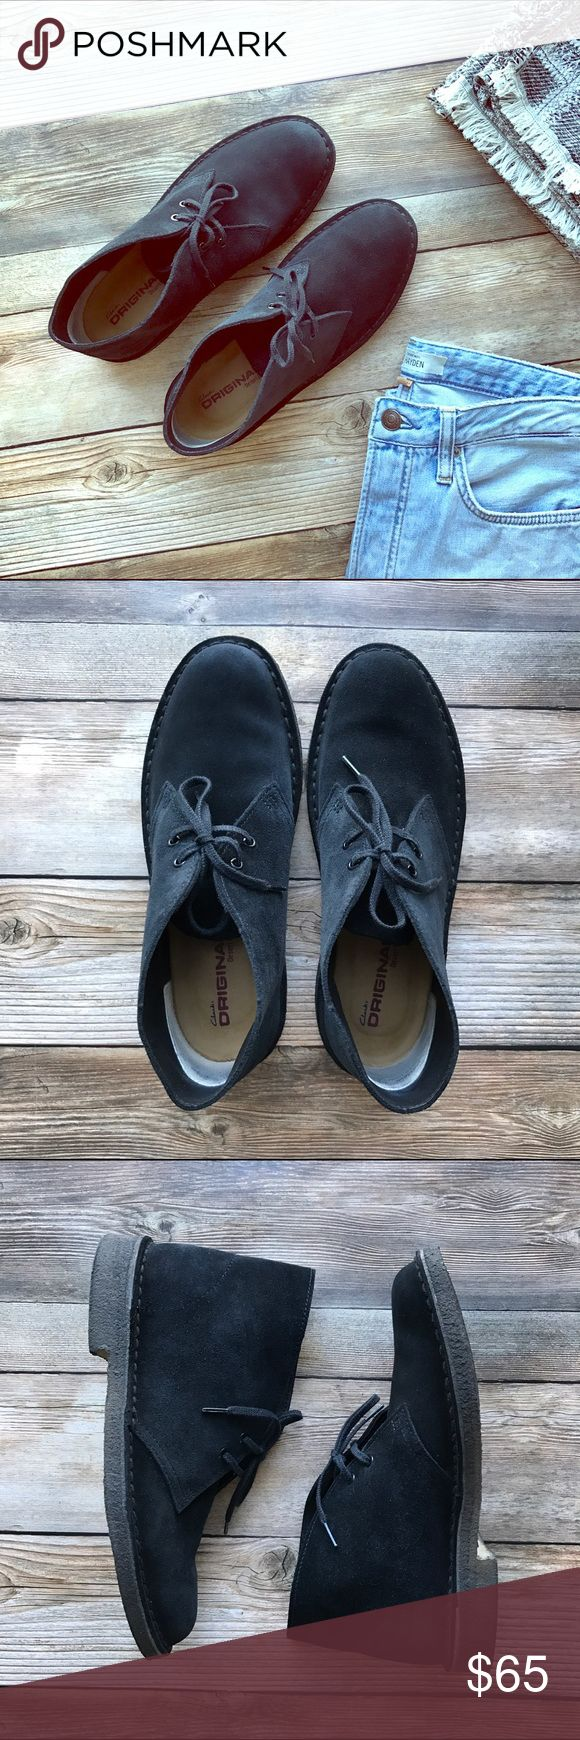 Clarks Womens Desert Boots US 7.5 Black Suede Clarks Womens Desert Boots - Size US 7.5 (footbed 24.5 cm). Upper material - suede. Lining material - leather. Worn a few times! Excellent condition! Clarks Shoes Ankle Boots & Booties